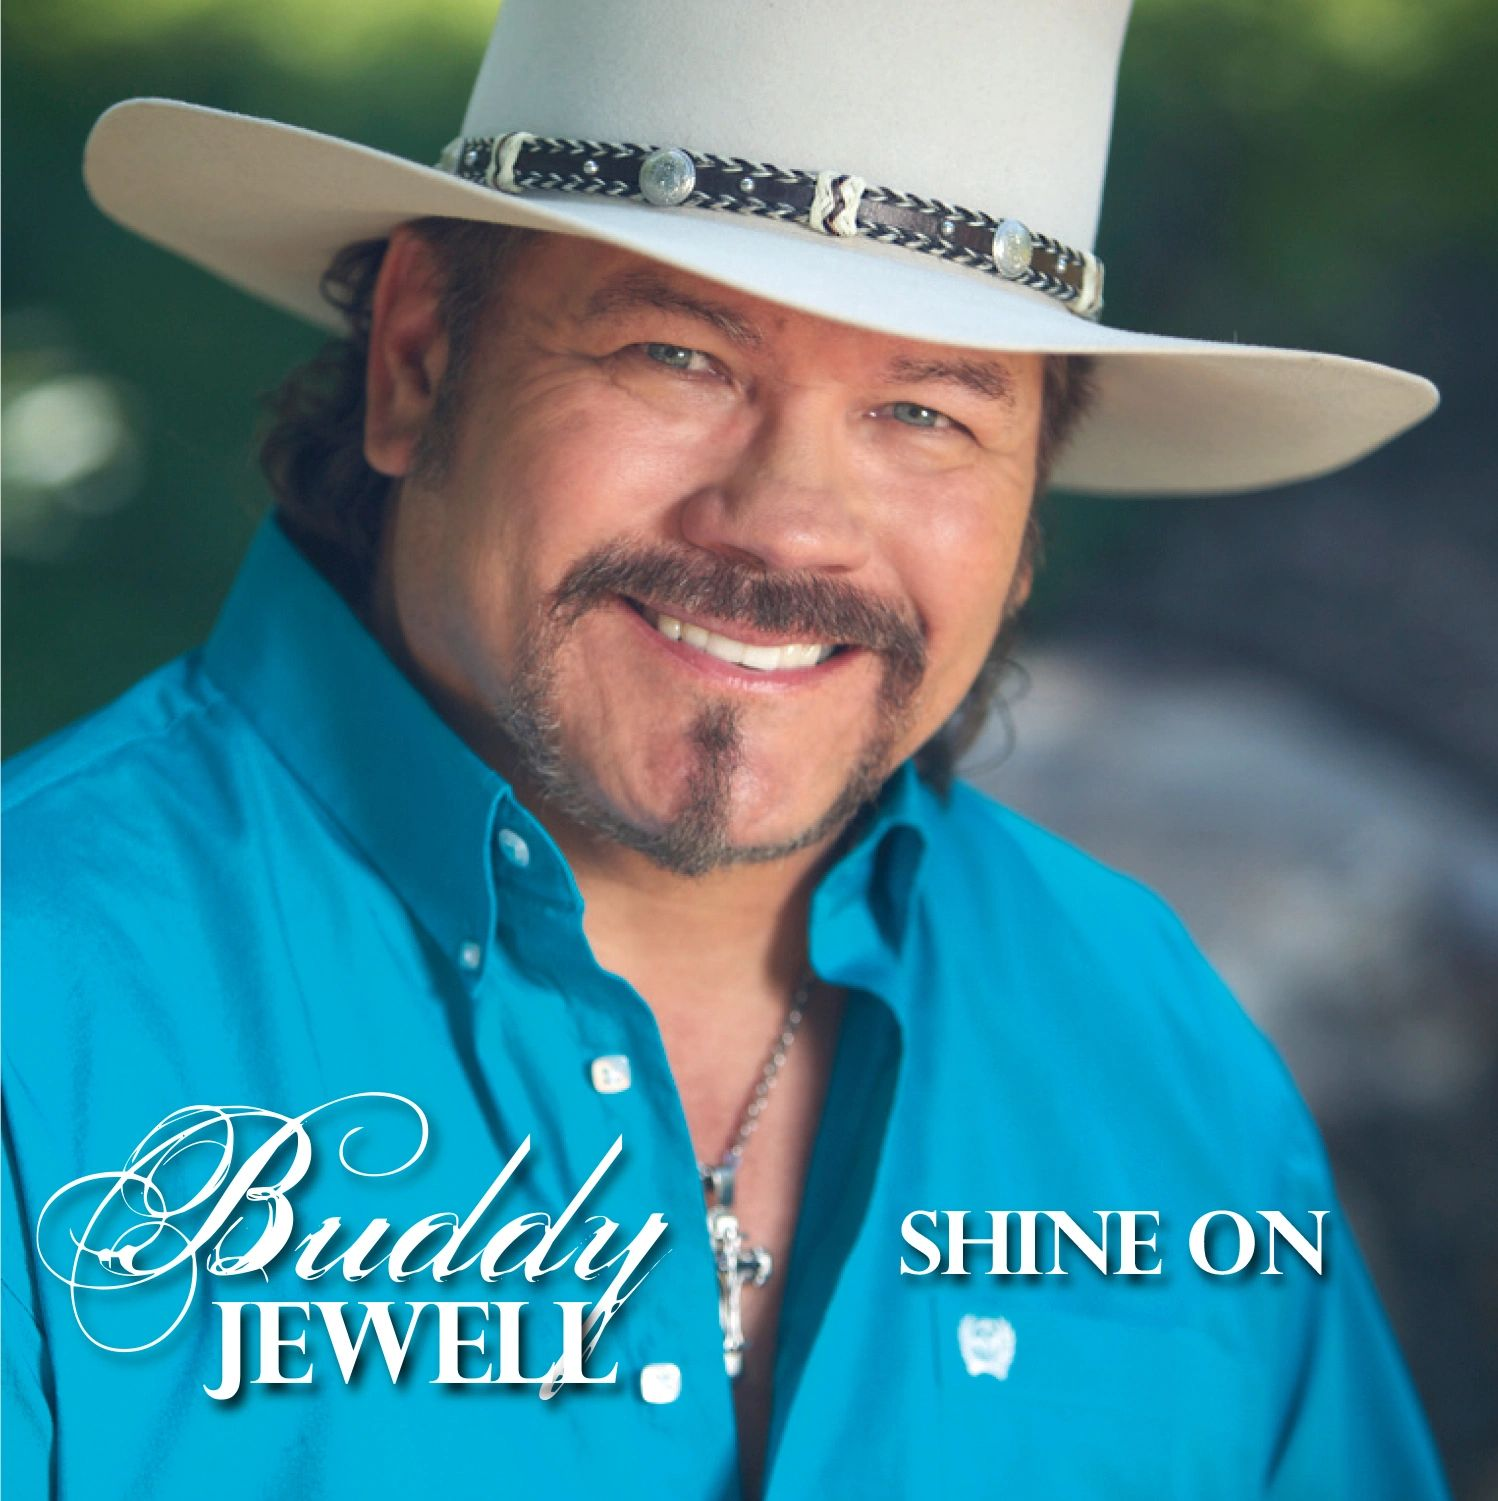 SHINE ON CD COVER